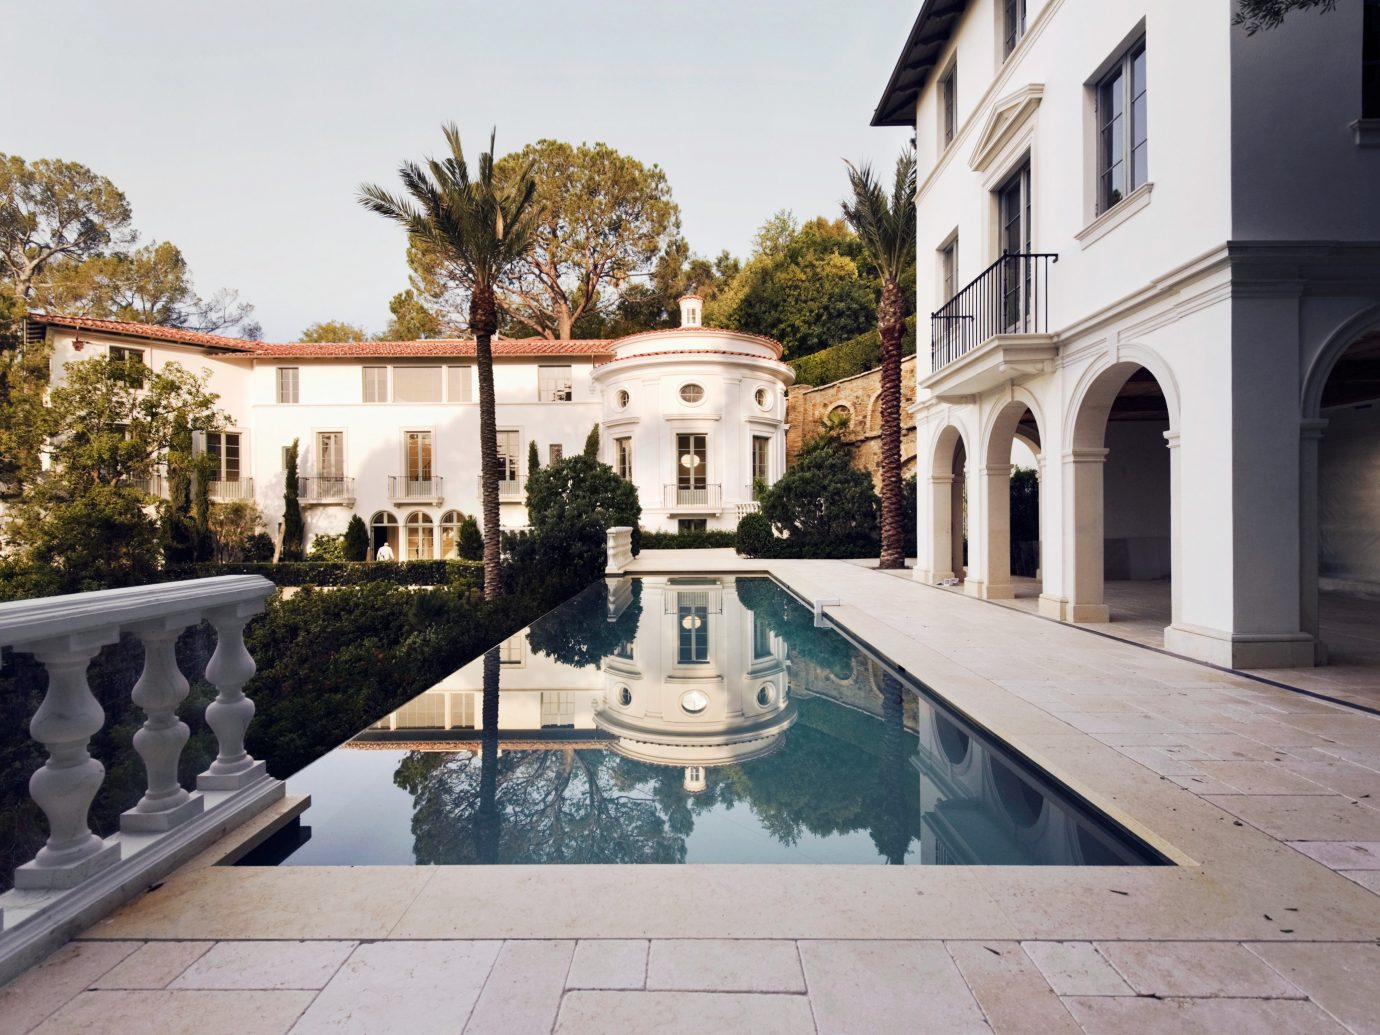 Offbeat outdoor property estate building Courtyard swimming pool Architecture mansion plaza reflecting pool home Villa palace park facade hacienda backyard stone walkway colonnade